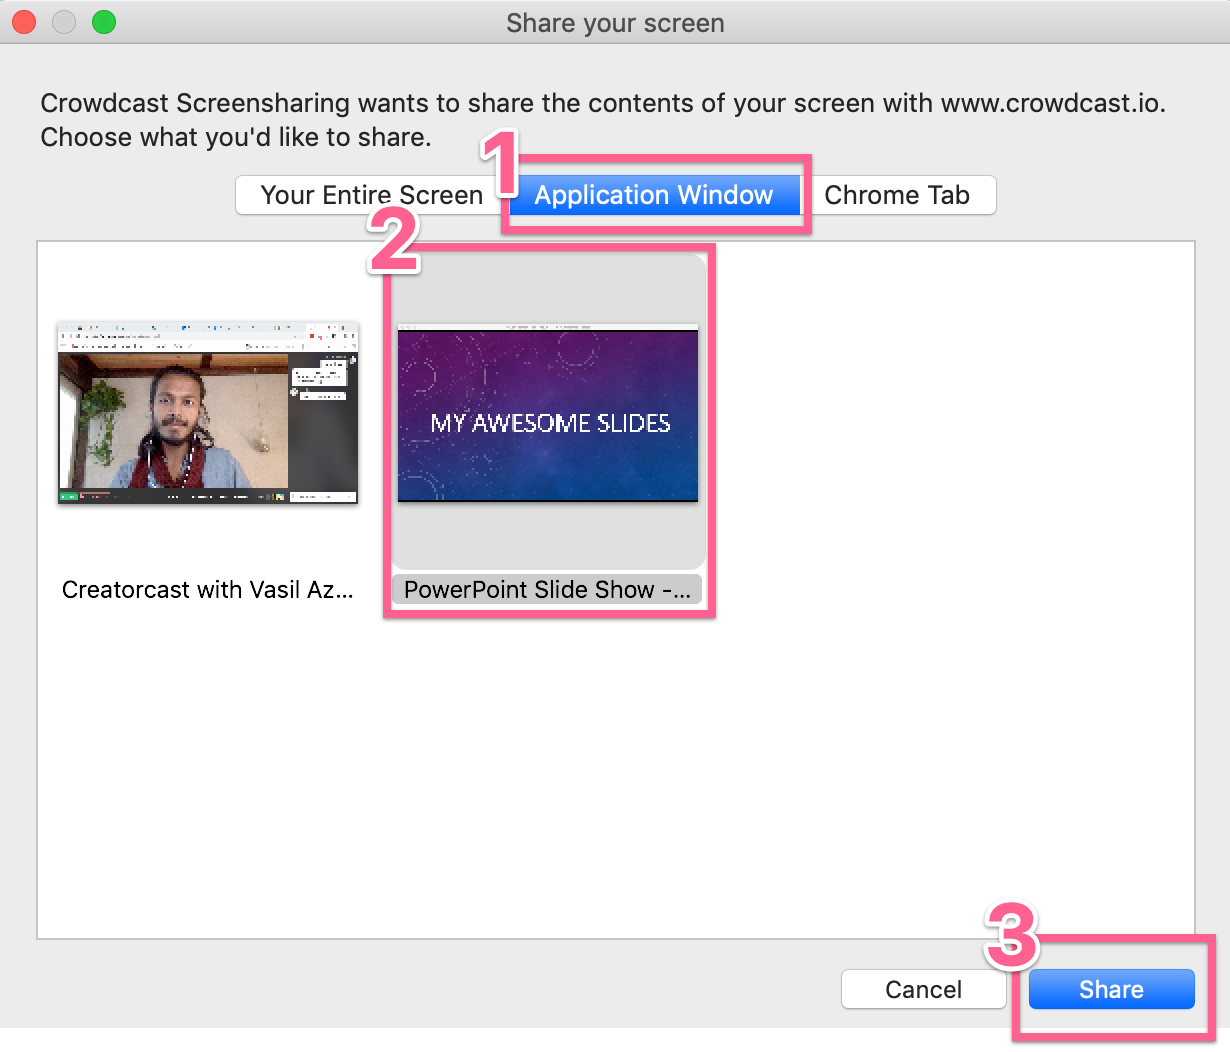 Application window within the screenshare options